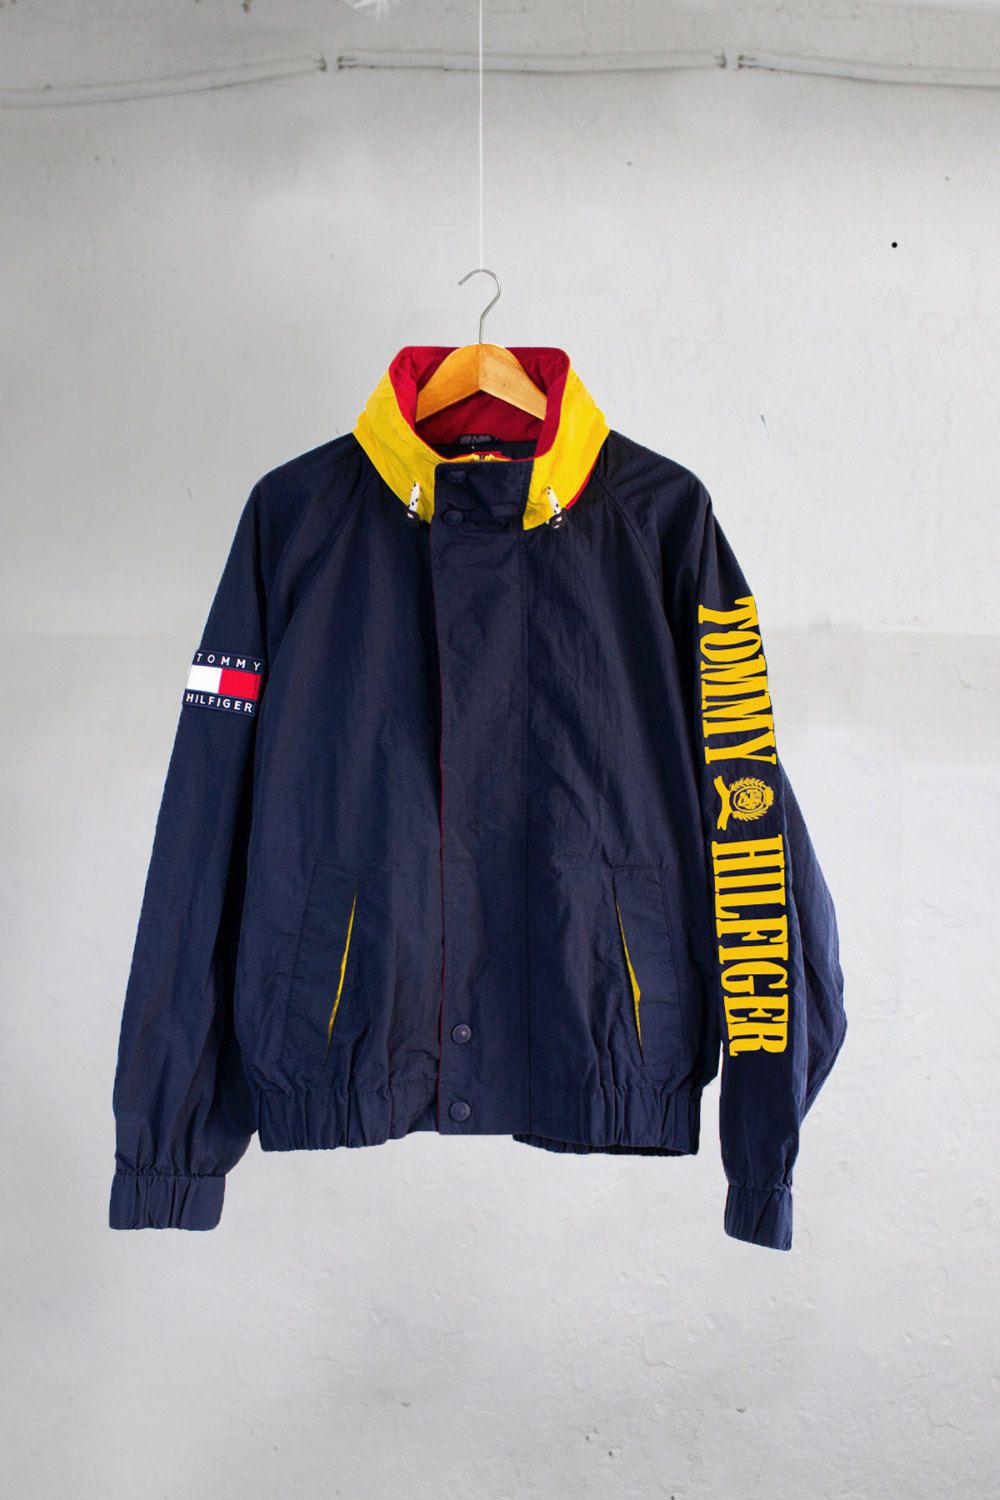 610b4b5125d4 Vintage 90 s Tommy Hilfiger Spell Out Navy Blue Red Yellow Hooded Jacket  Size L…